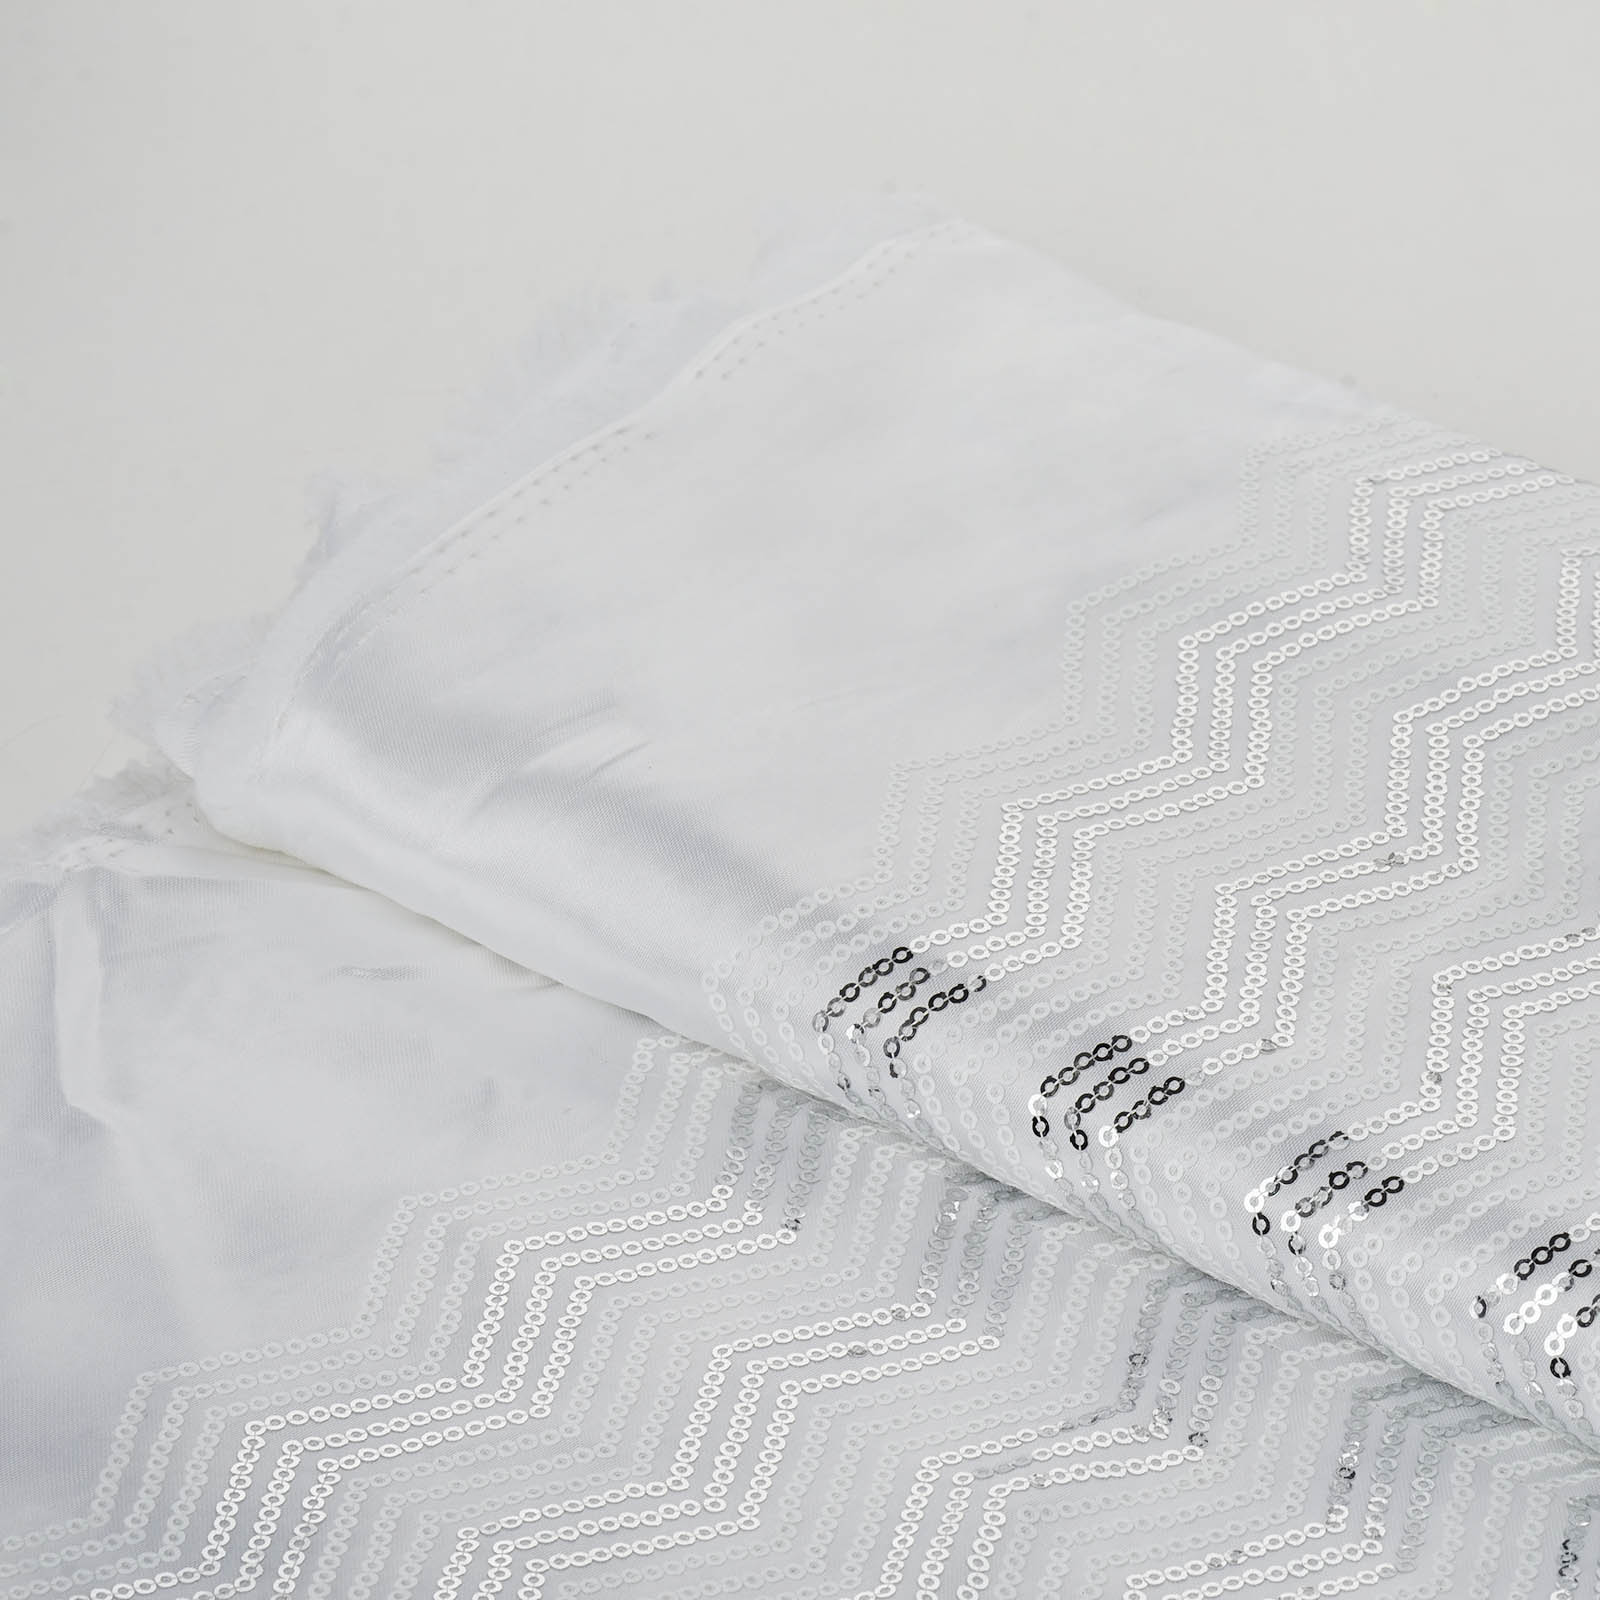 """BalsaCircle Silver White 54"""" x 4 yards Sequins Chevron Pattern Fabric Bolt Sewing Put-up - Sewing Crafts Draping Decorations Supply"""